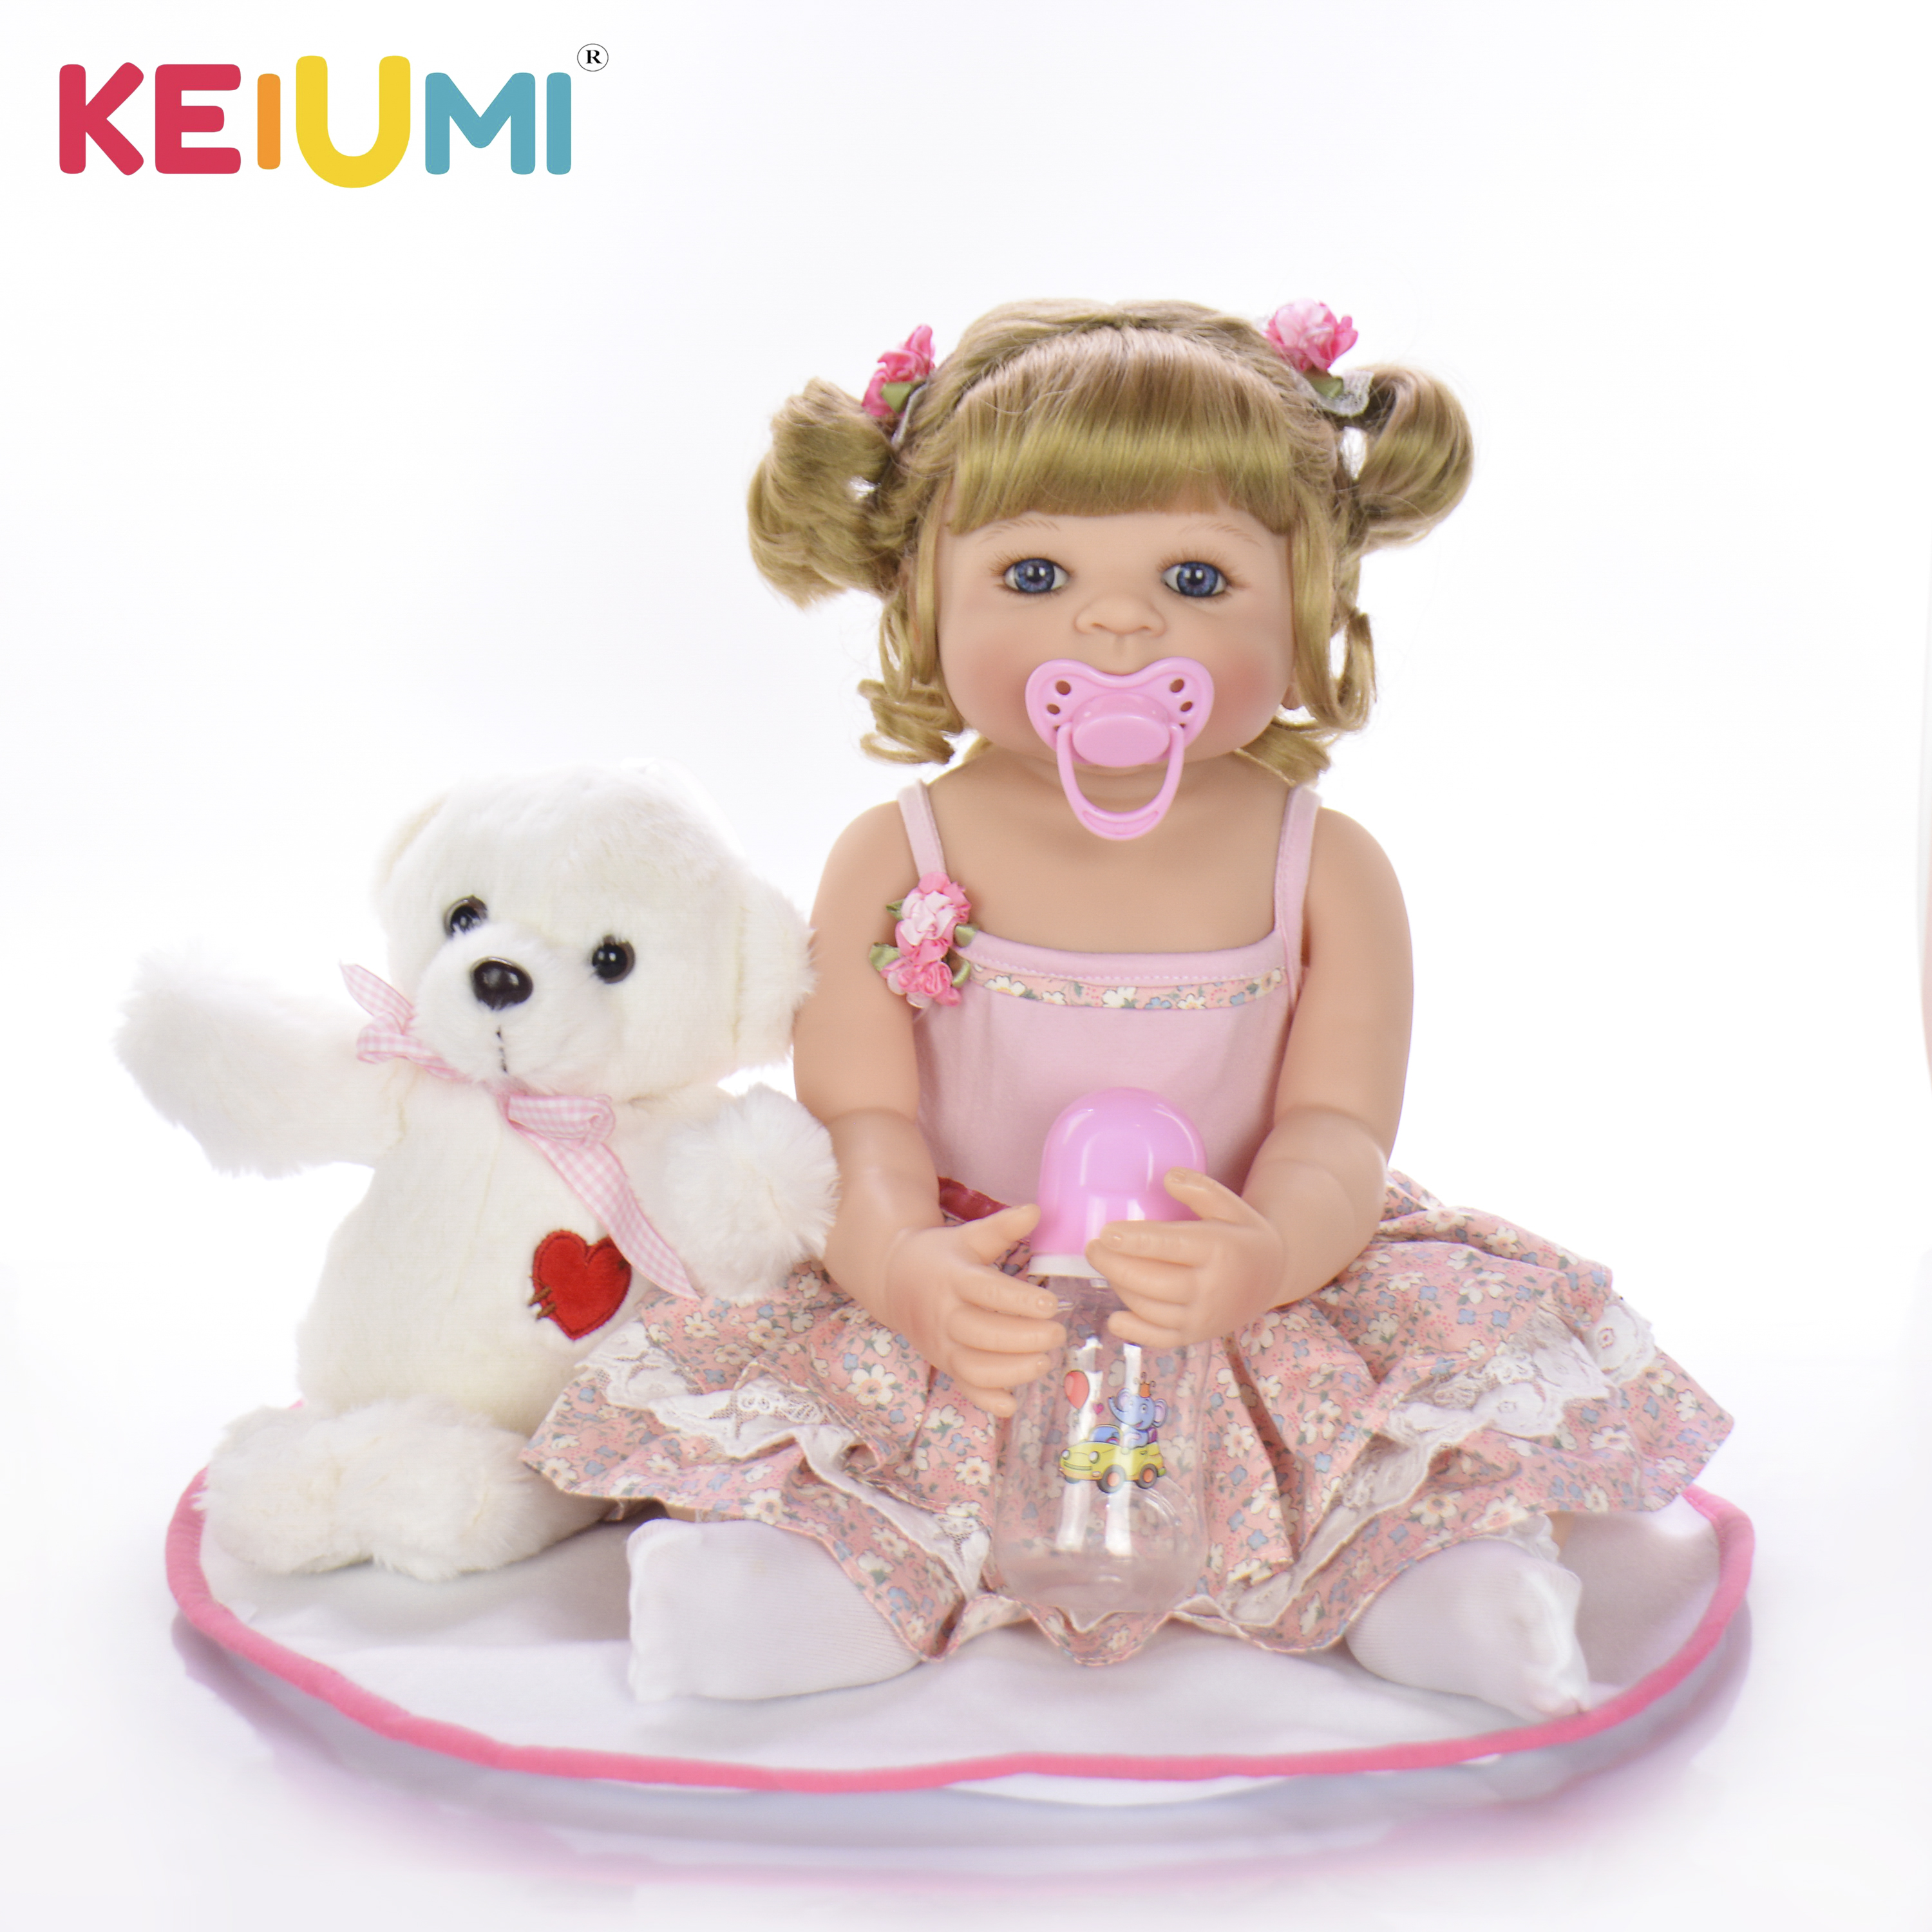 KEIUMI 22 Inch Silicone Baby Dolls Lifelike 55cm Full Body Baby Reborn Girl Doll DIY Toy